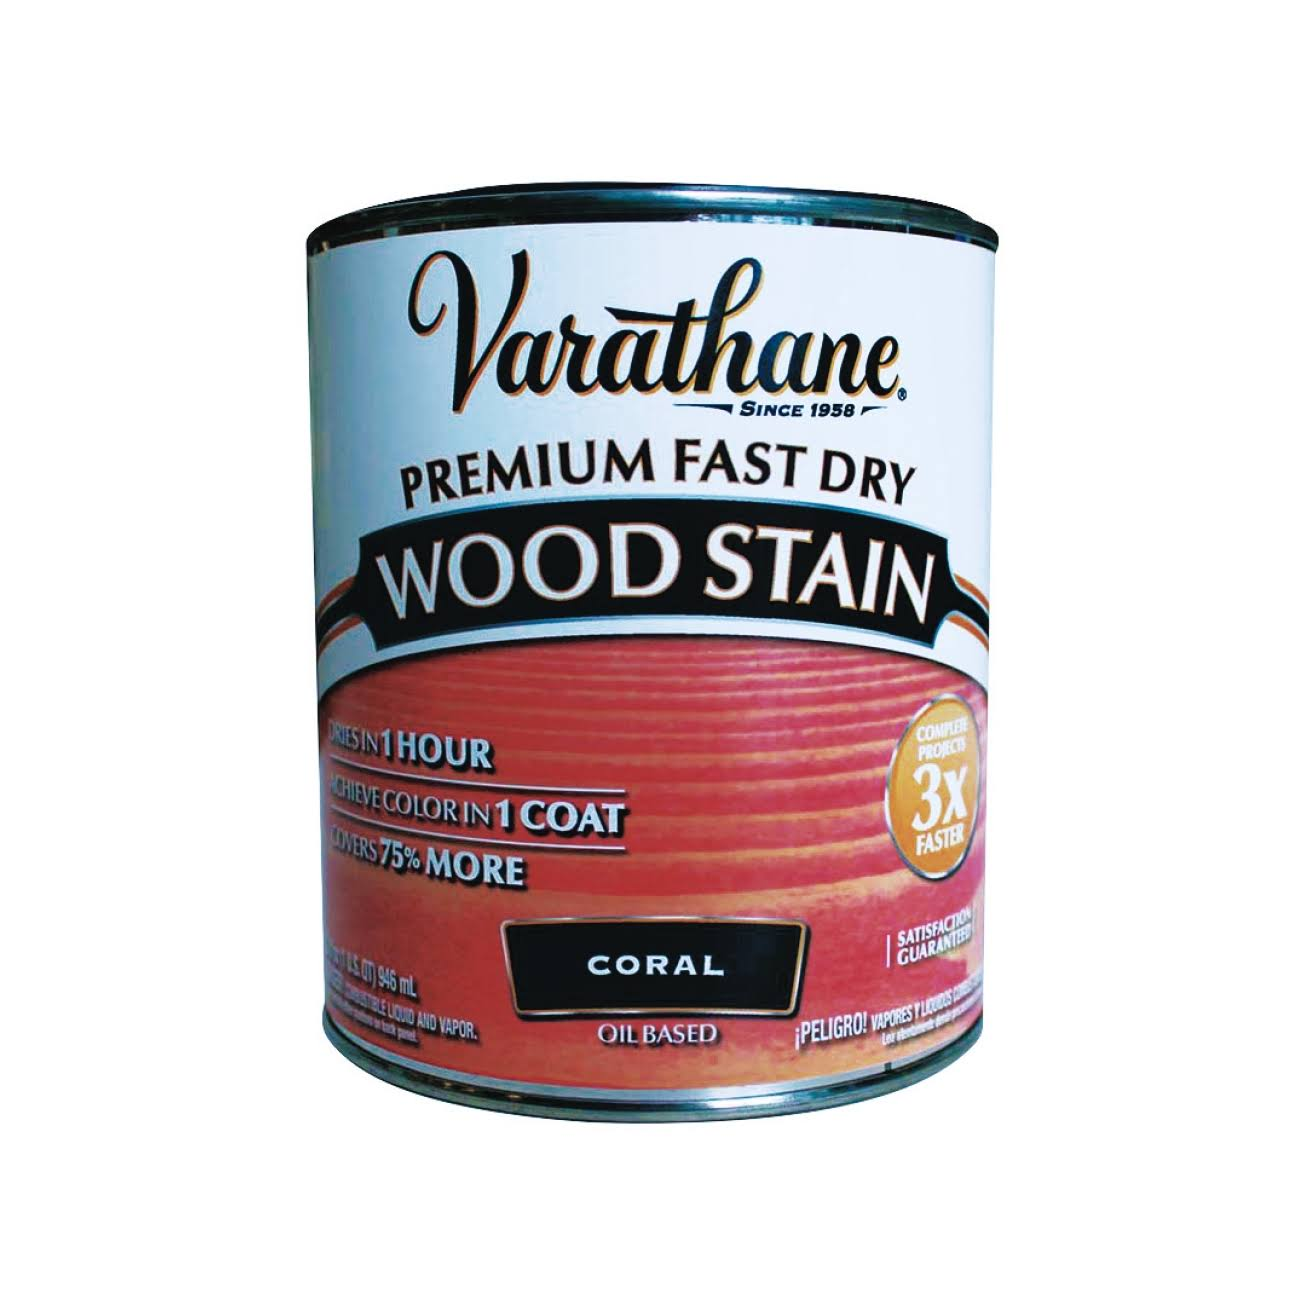 Varathane 307413 Premium Fast Dry Wood Stain, 32 oz, Coral